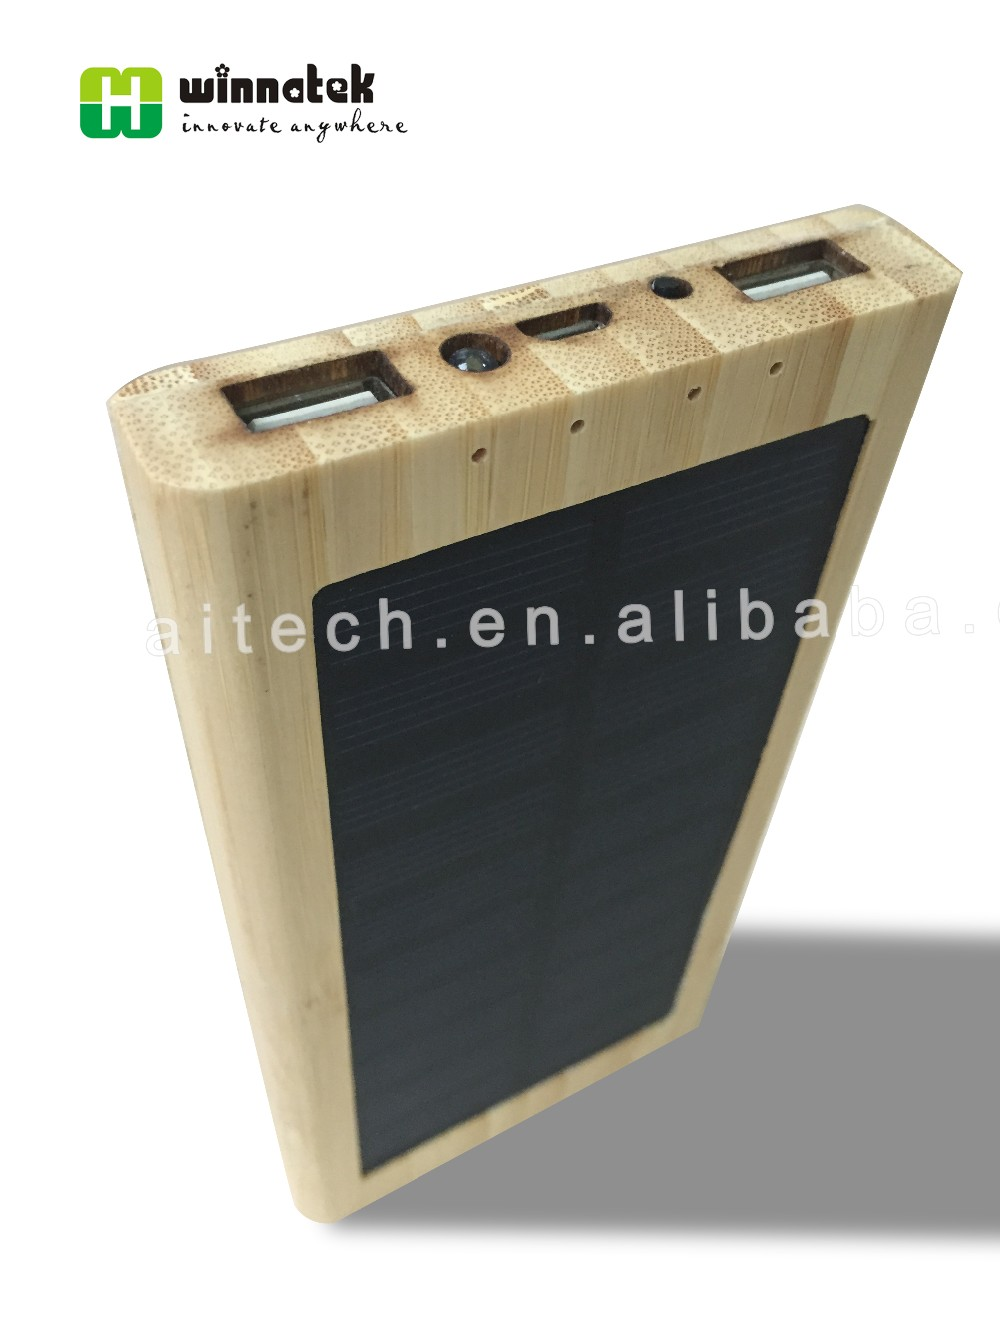 Alibaba Promotion Eco-friendly Wood Portable Power Bank 10000mah, Nature Wood Travel Polymer Solar Power Bank